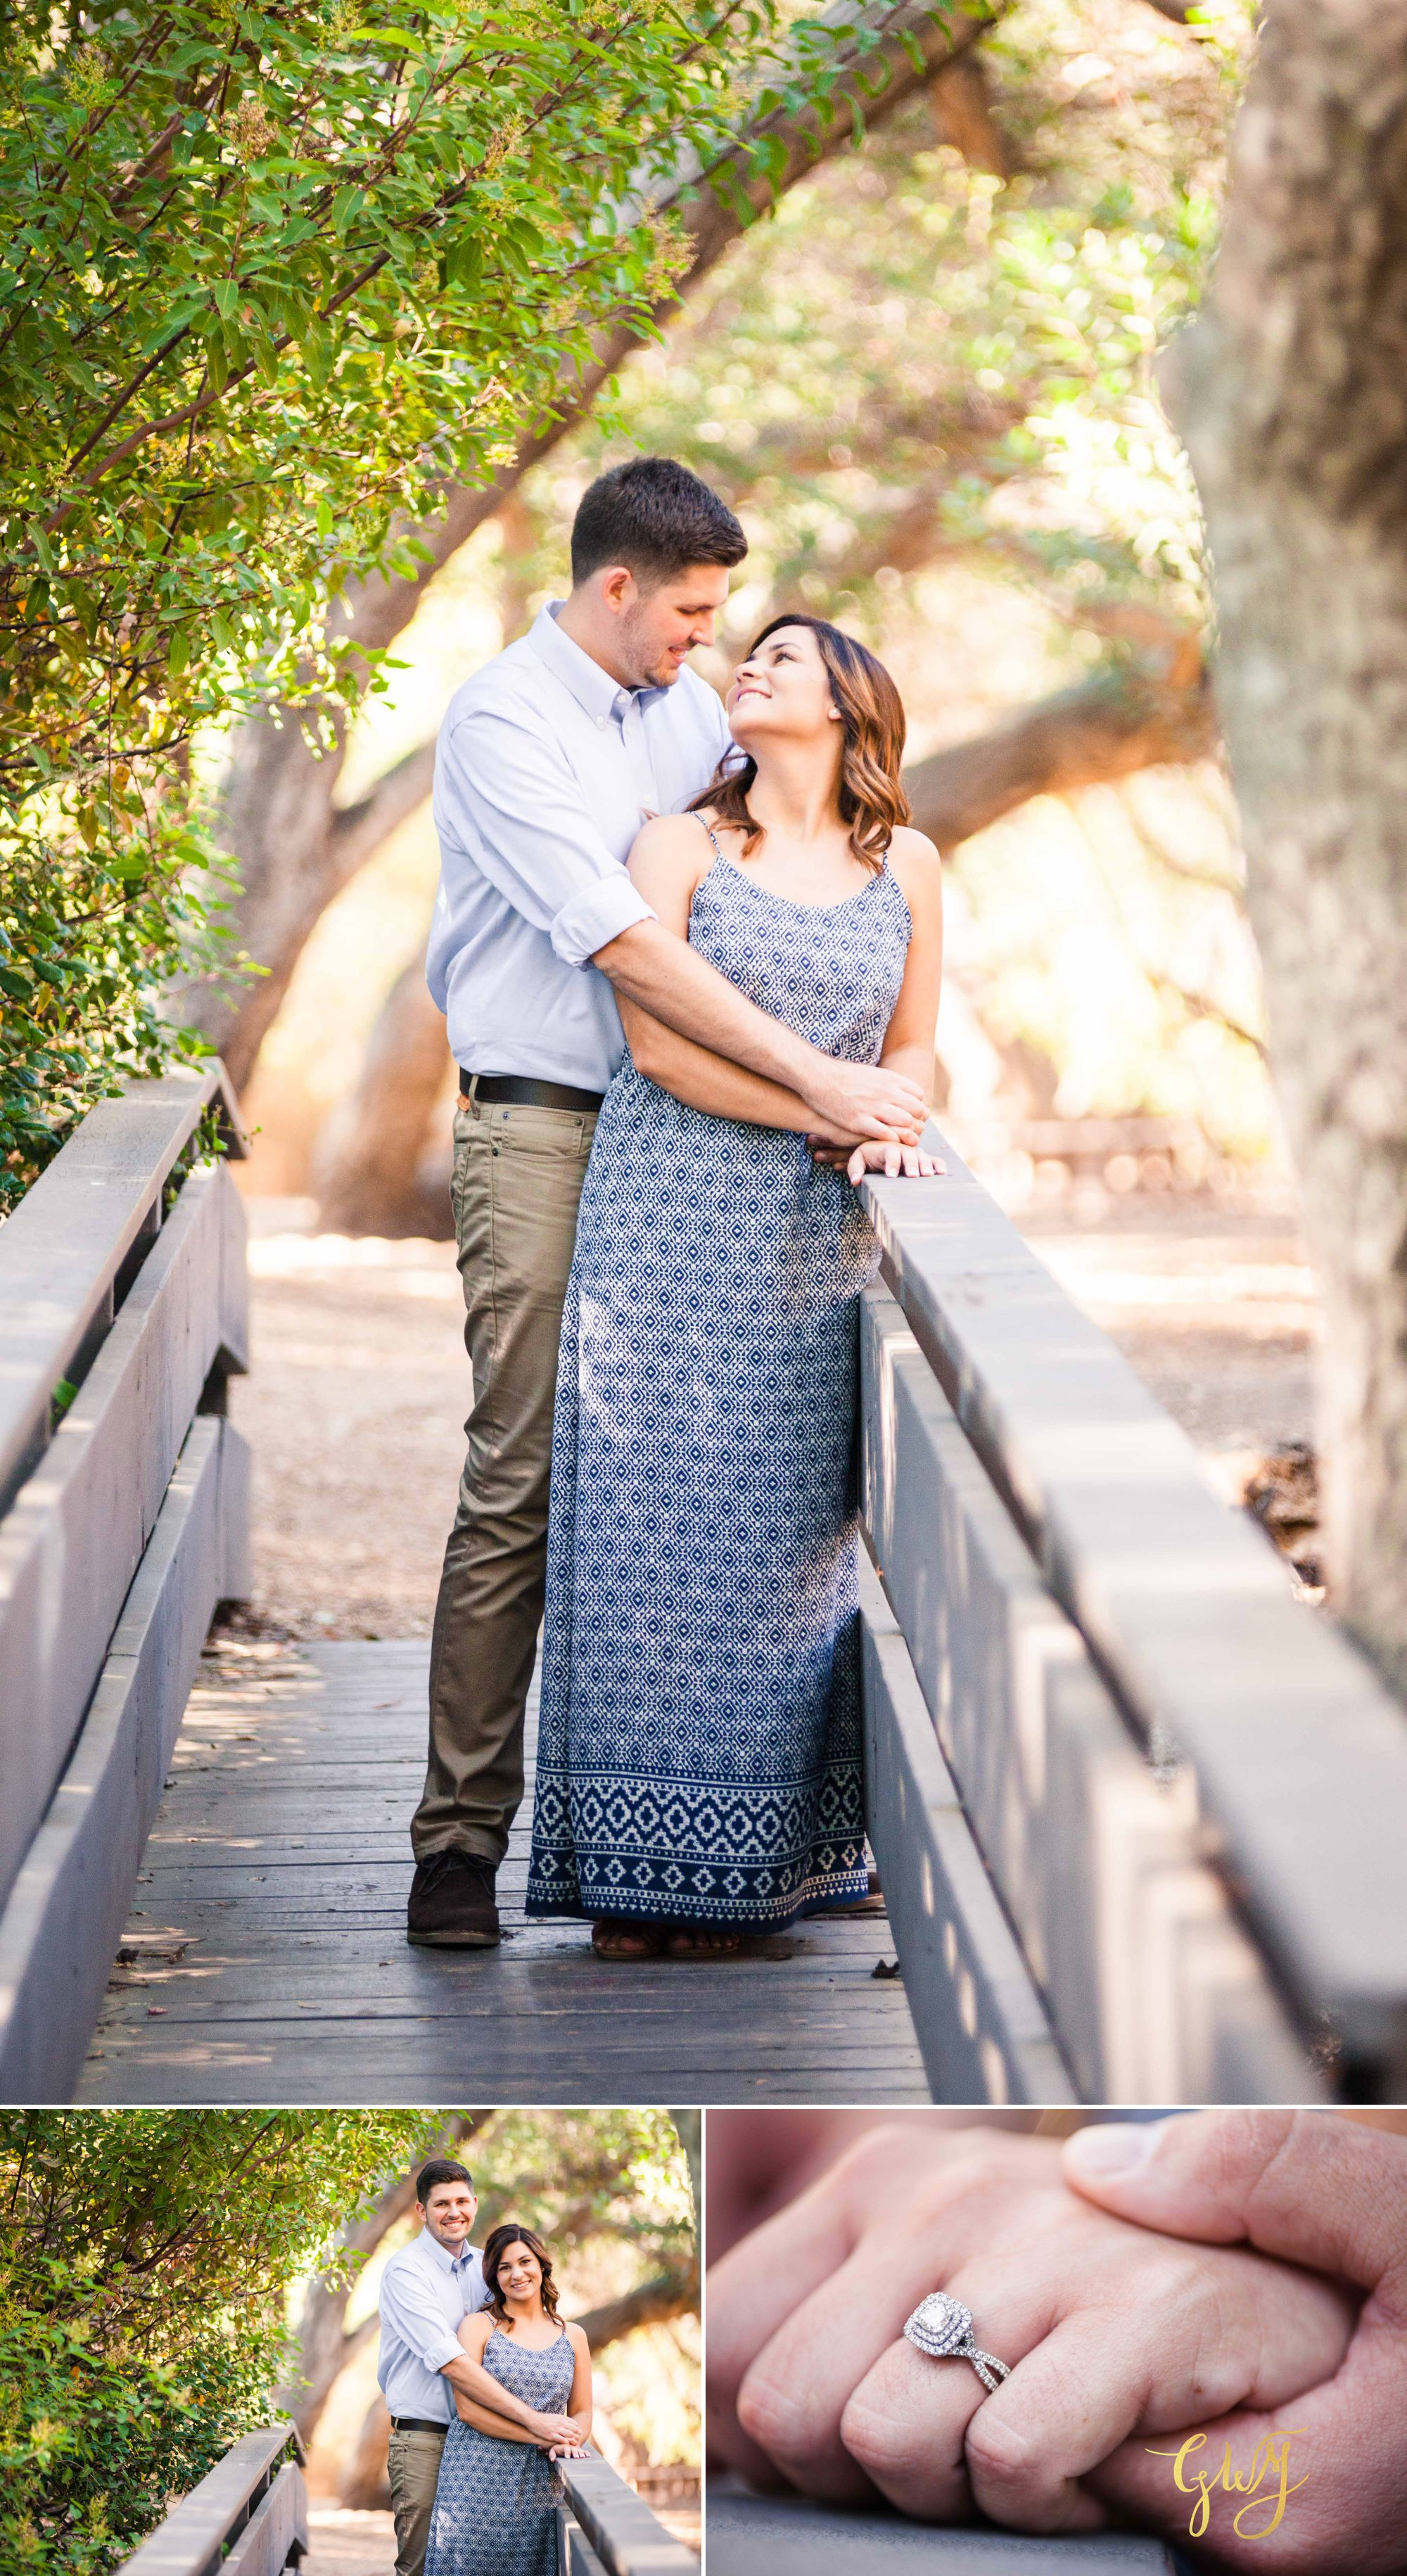 Allison + Jared Oak Canyon Nature Center Corona Del Mar Beach Sunset by Glass Woods Media 3.jpg